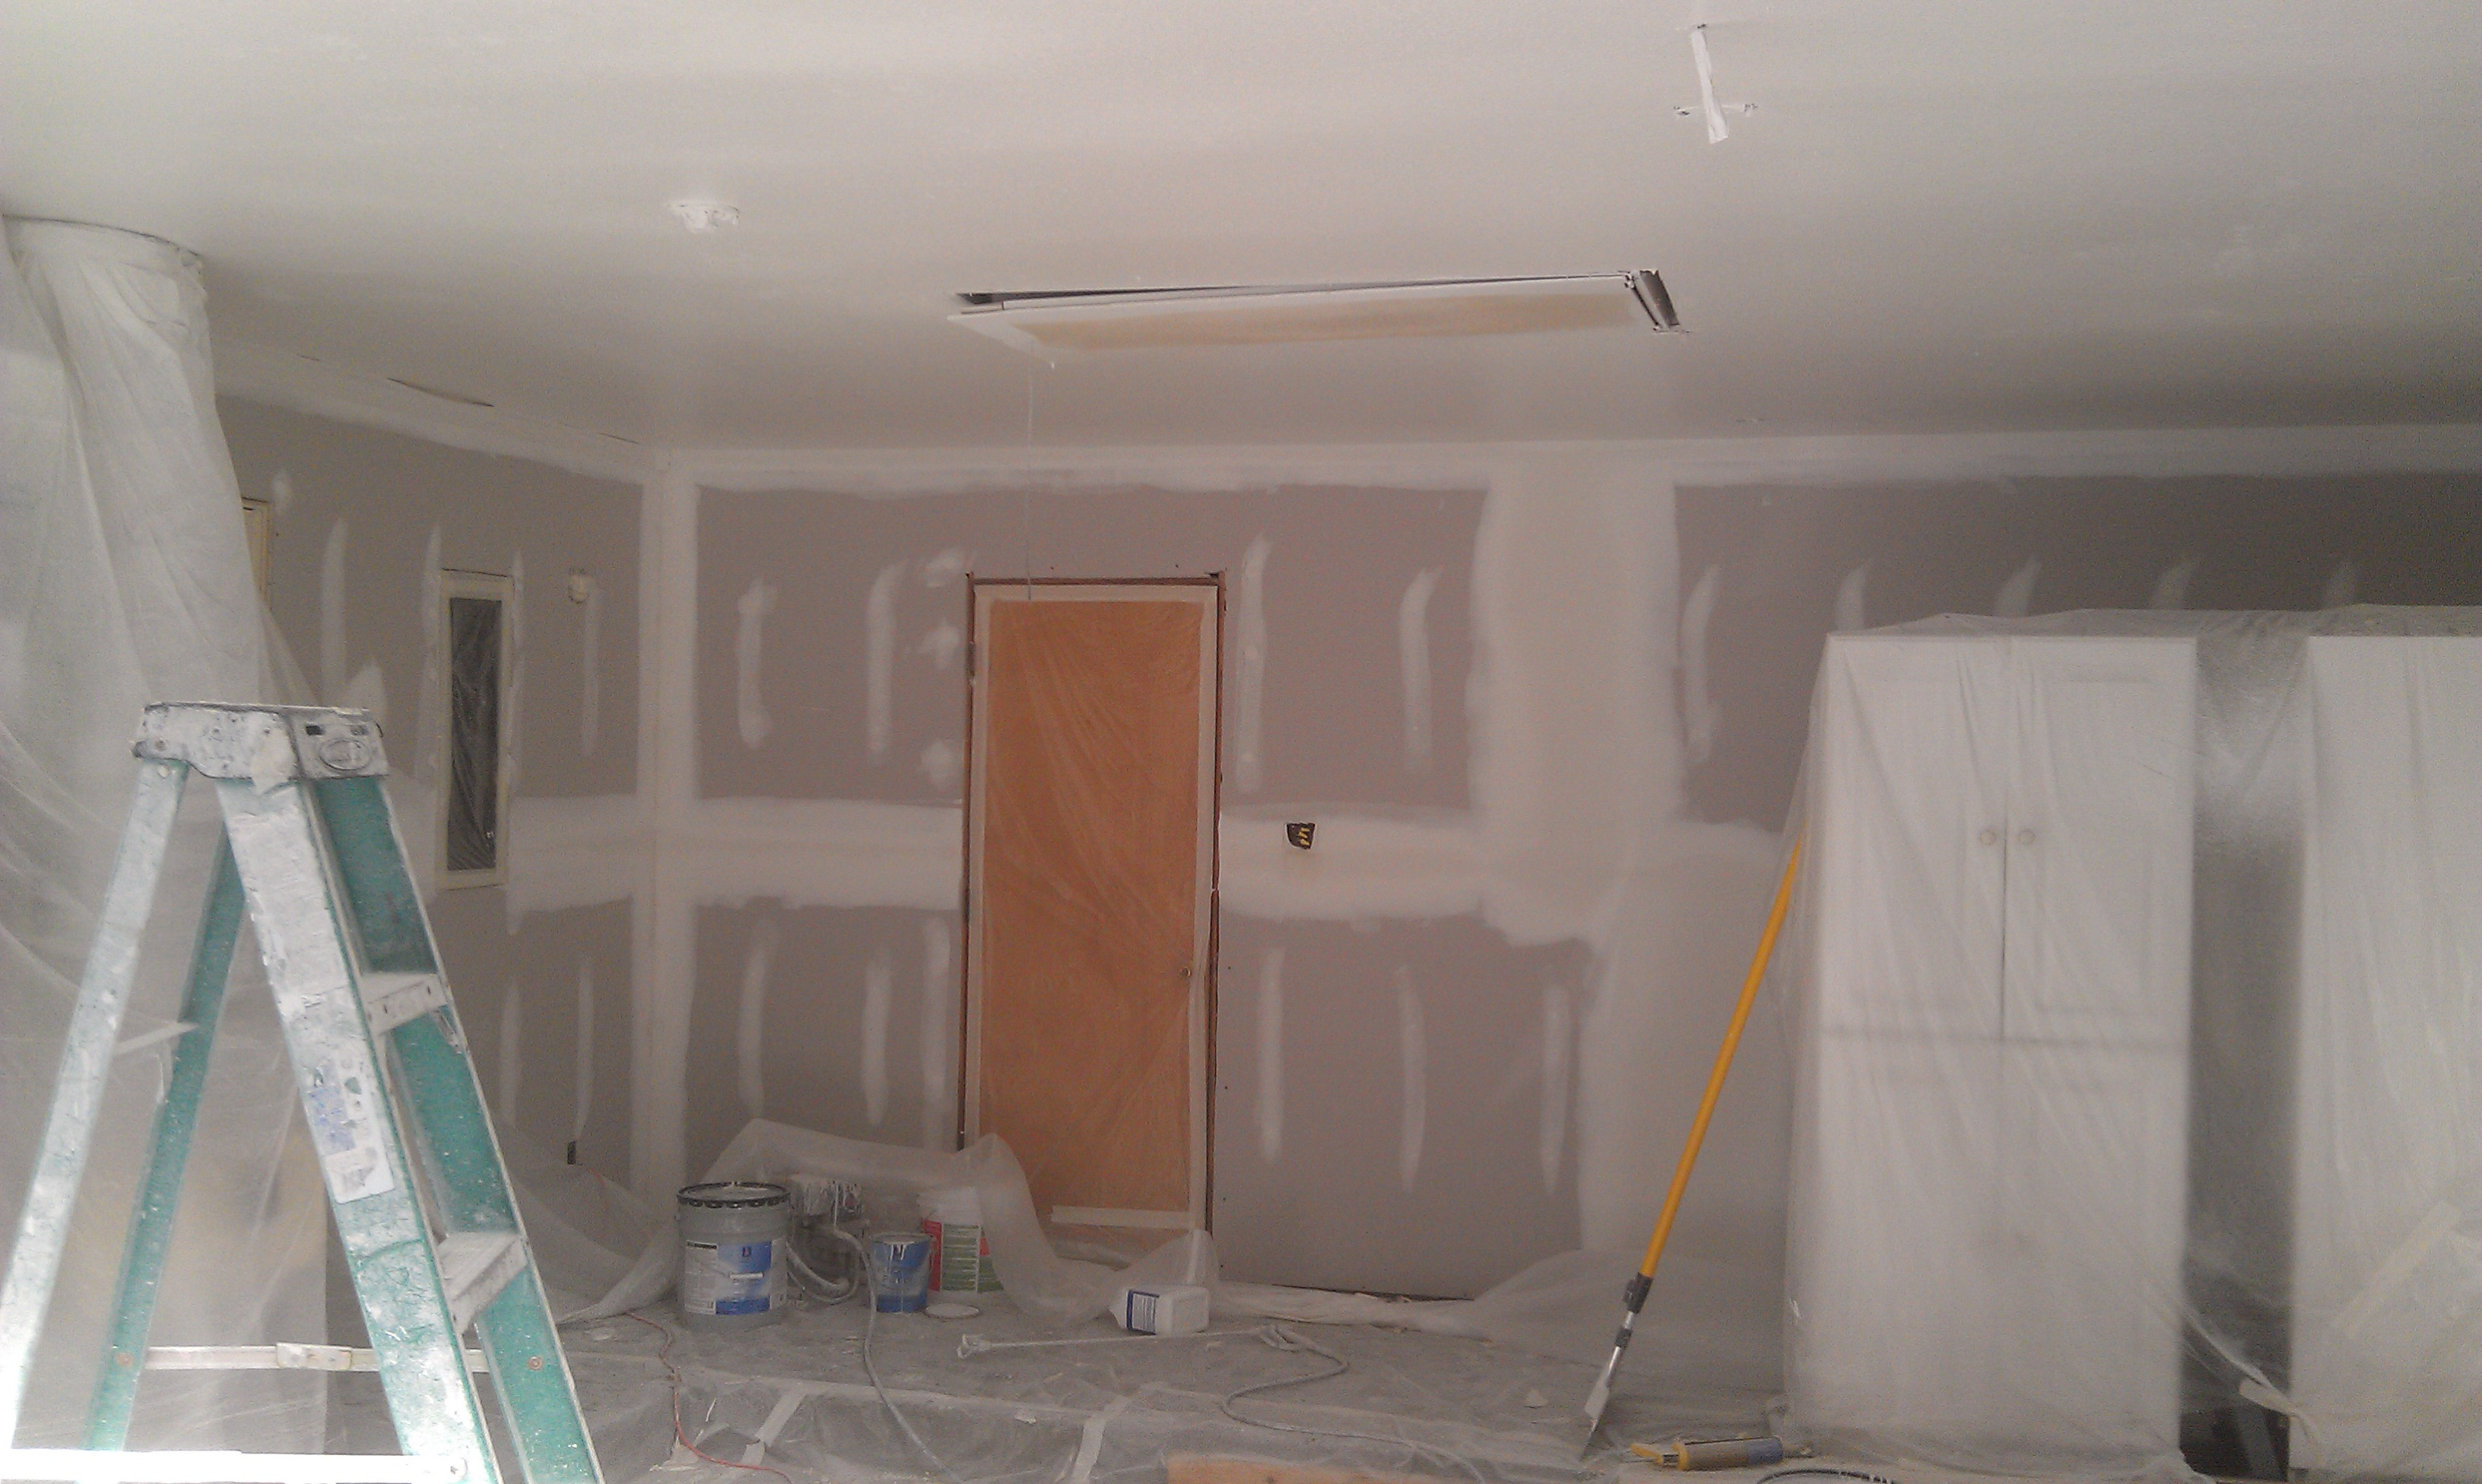 Popcorn ceiling and asbestos exposure best accessories for Is there asbestos in old drywall